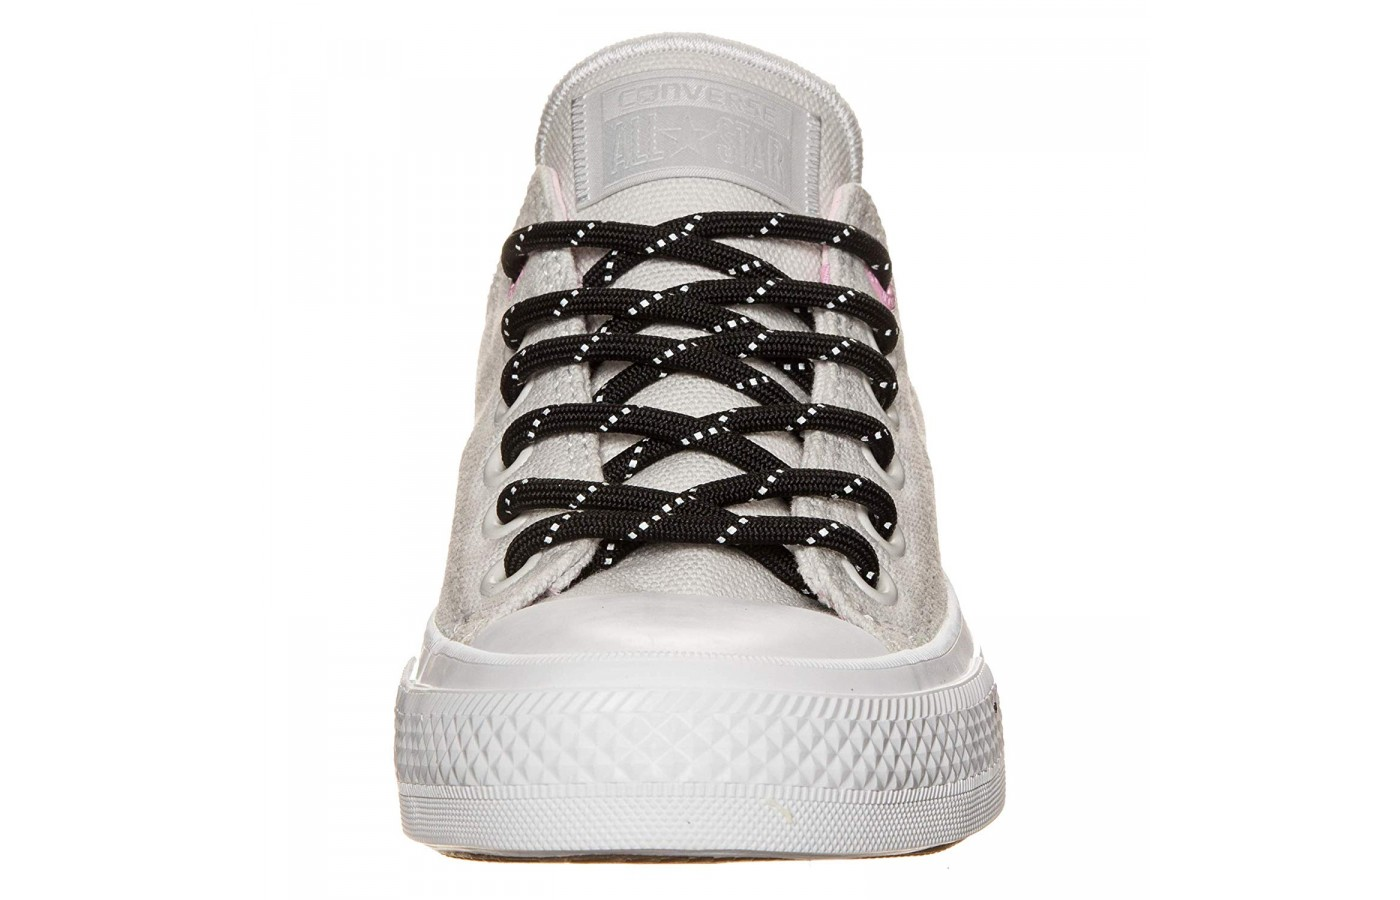 Converse Chuck II 2 Shield front